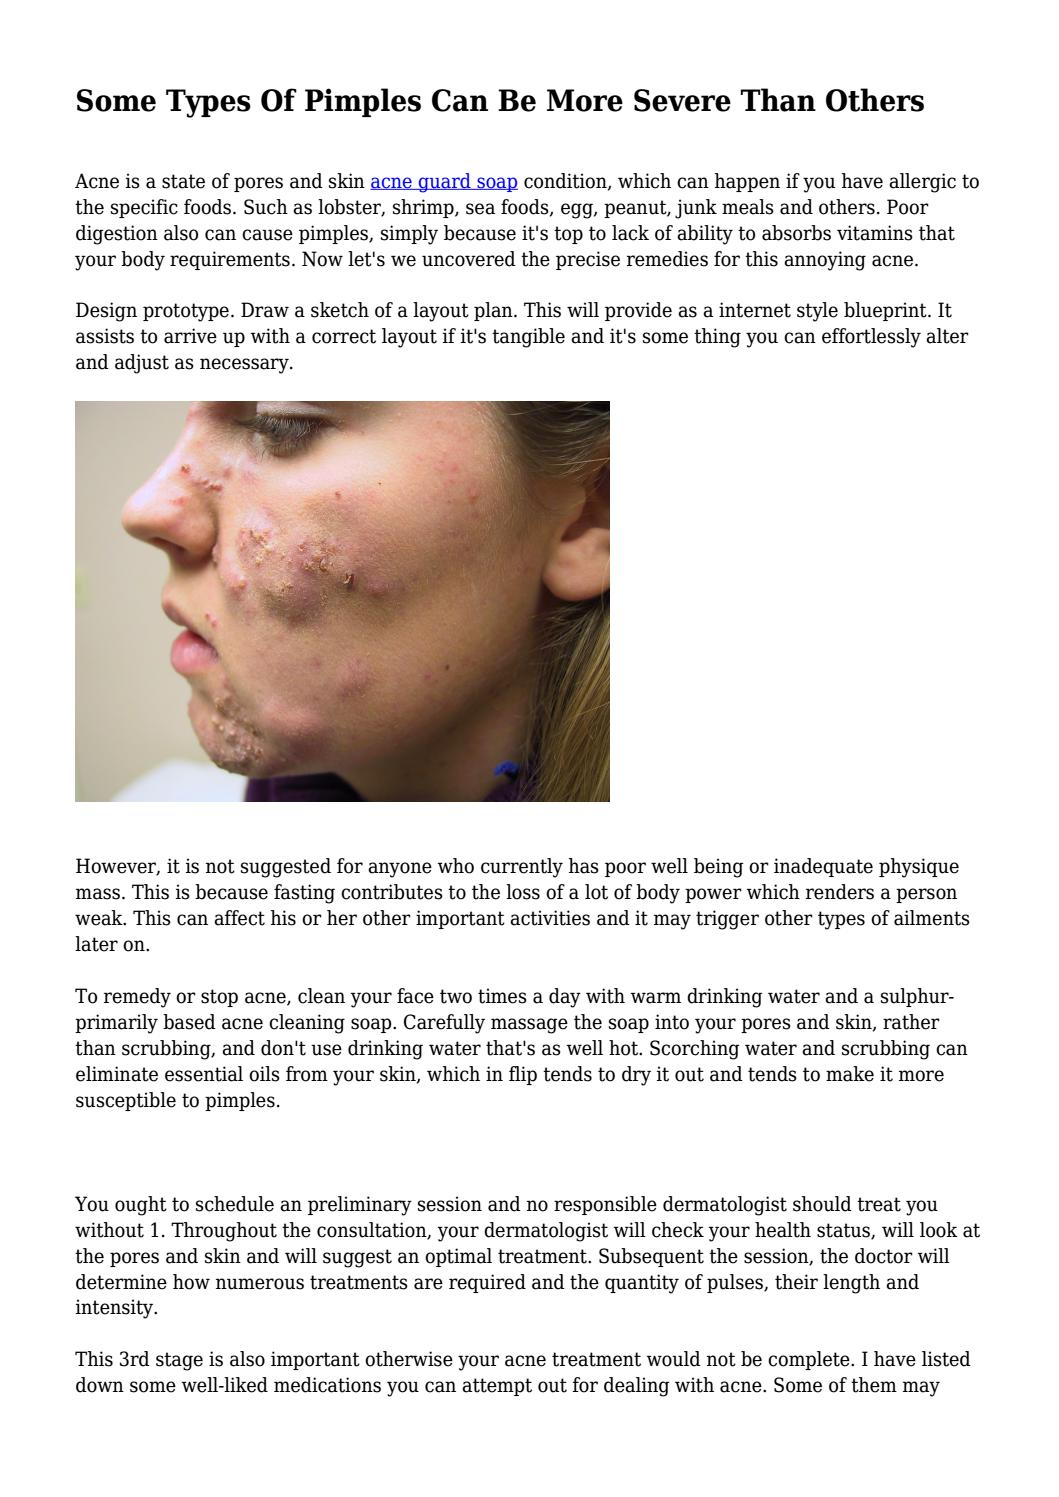 some types of pimples can be more severe than others by